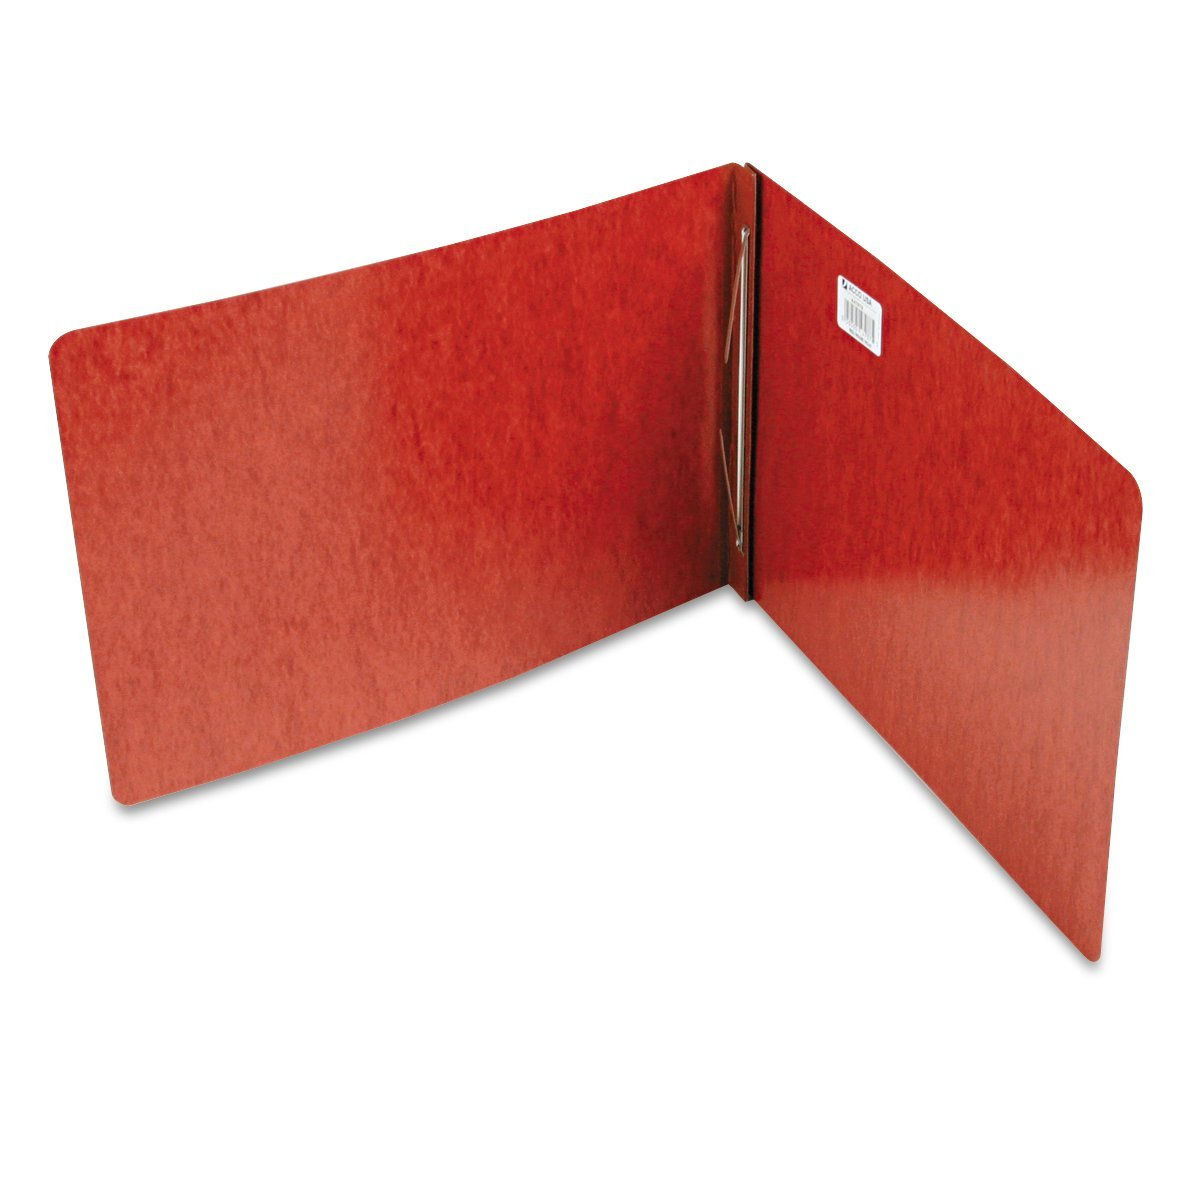 ACCO Pressboard Report Cover, Side Bound, Tyvek Reinforced Hinge, 11 x 17 Inch Sheet Size, 8.5 Inch Centers, Red (A7047078A), Durable 20 point pressboard.., By ACCO Brands From USA